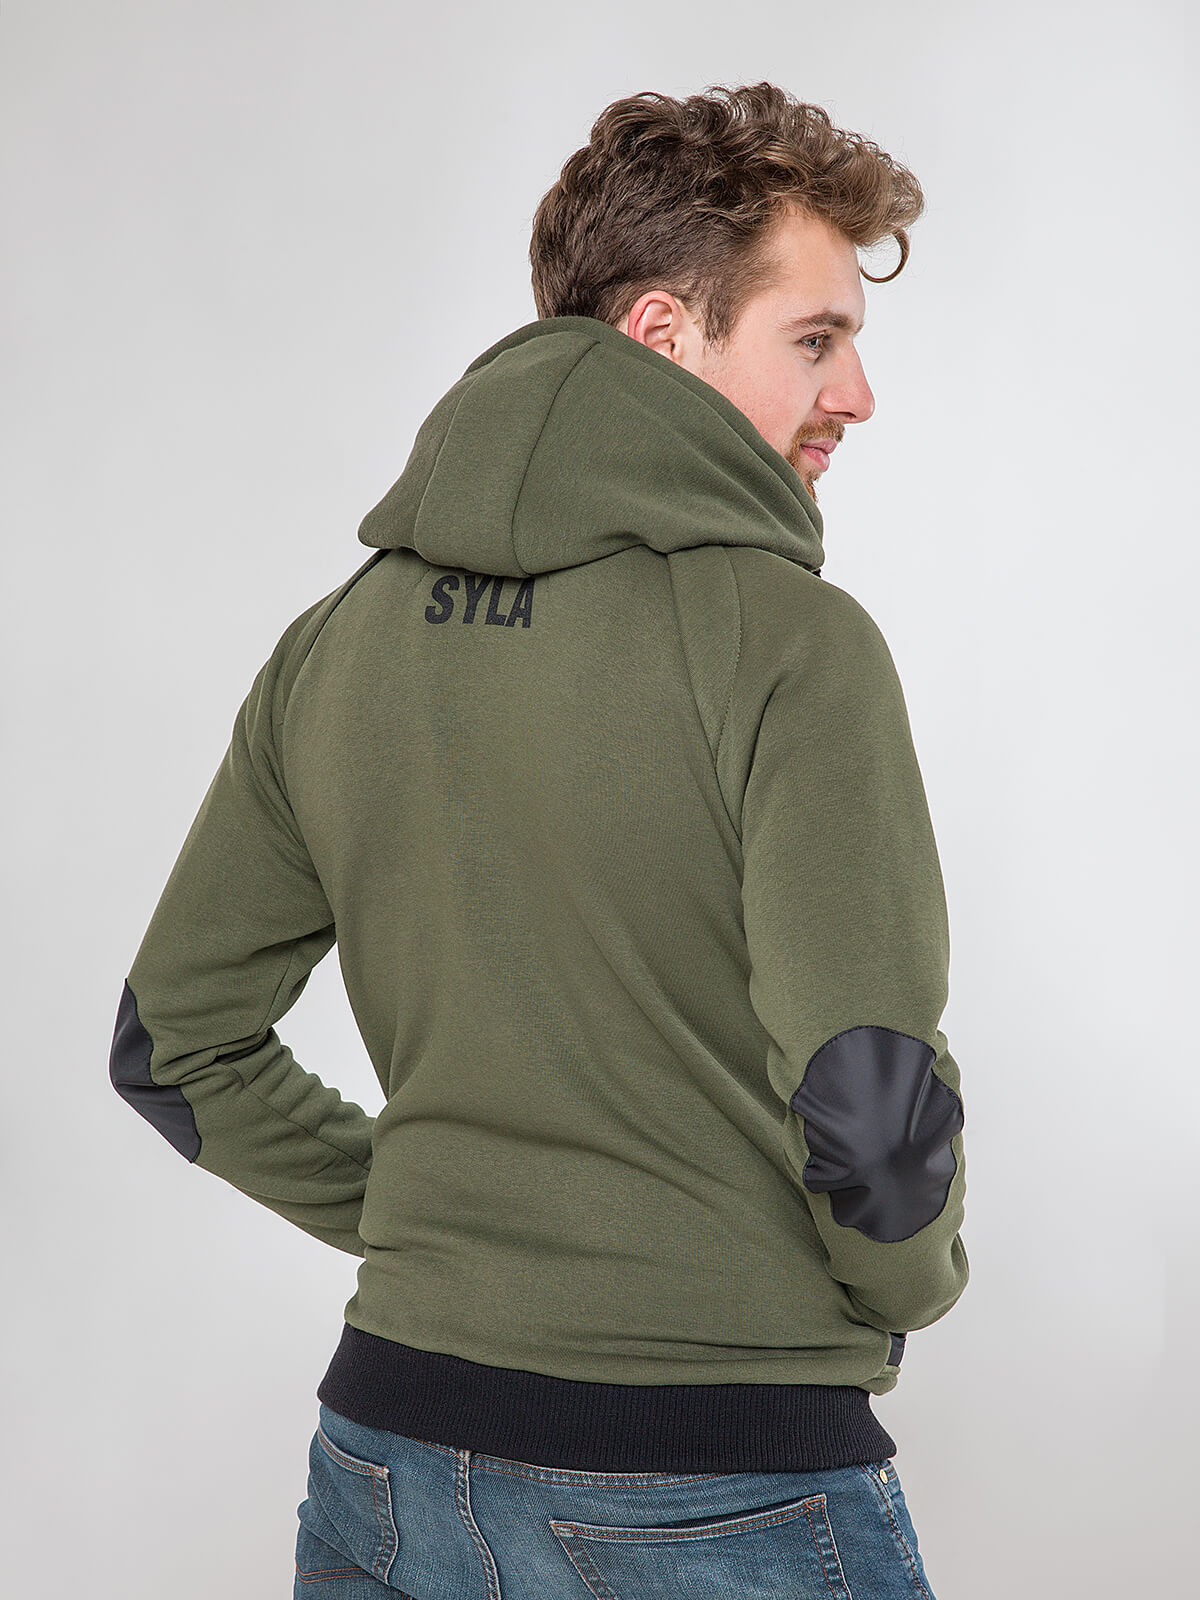 Men's Hoodie Syla. Color khaki.  Material of the hoodie – three-cord thread fabric: 77% cotton, 23% polyester.